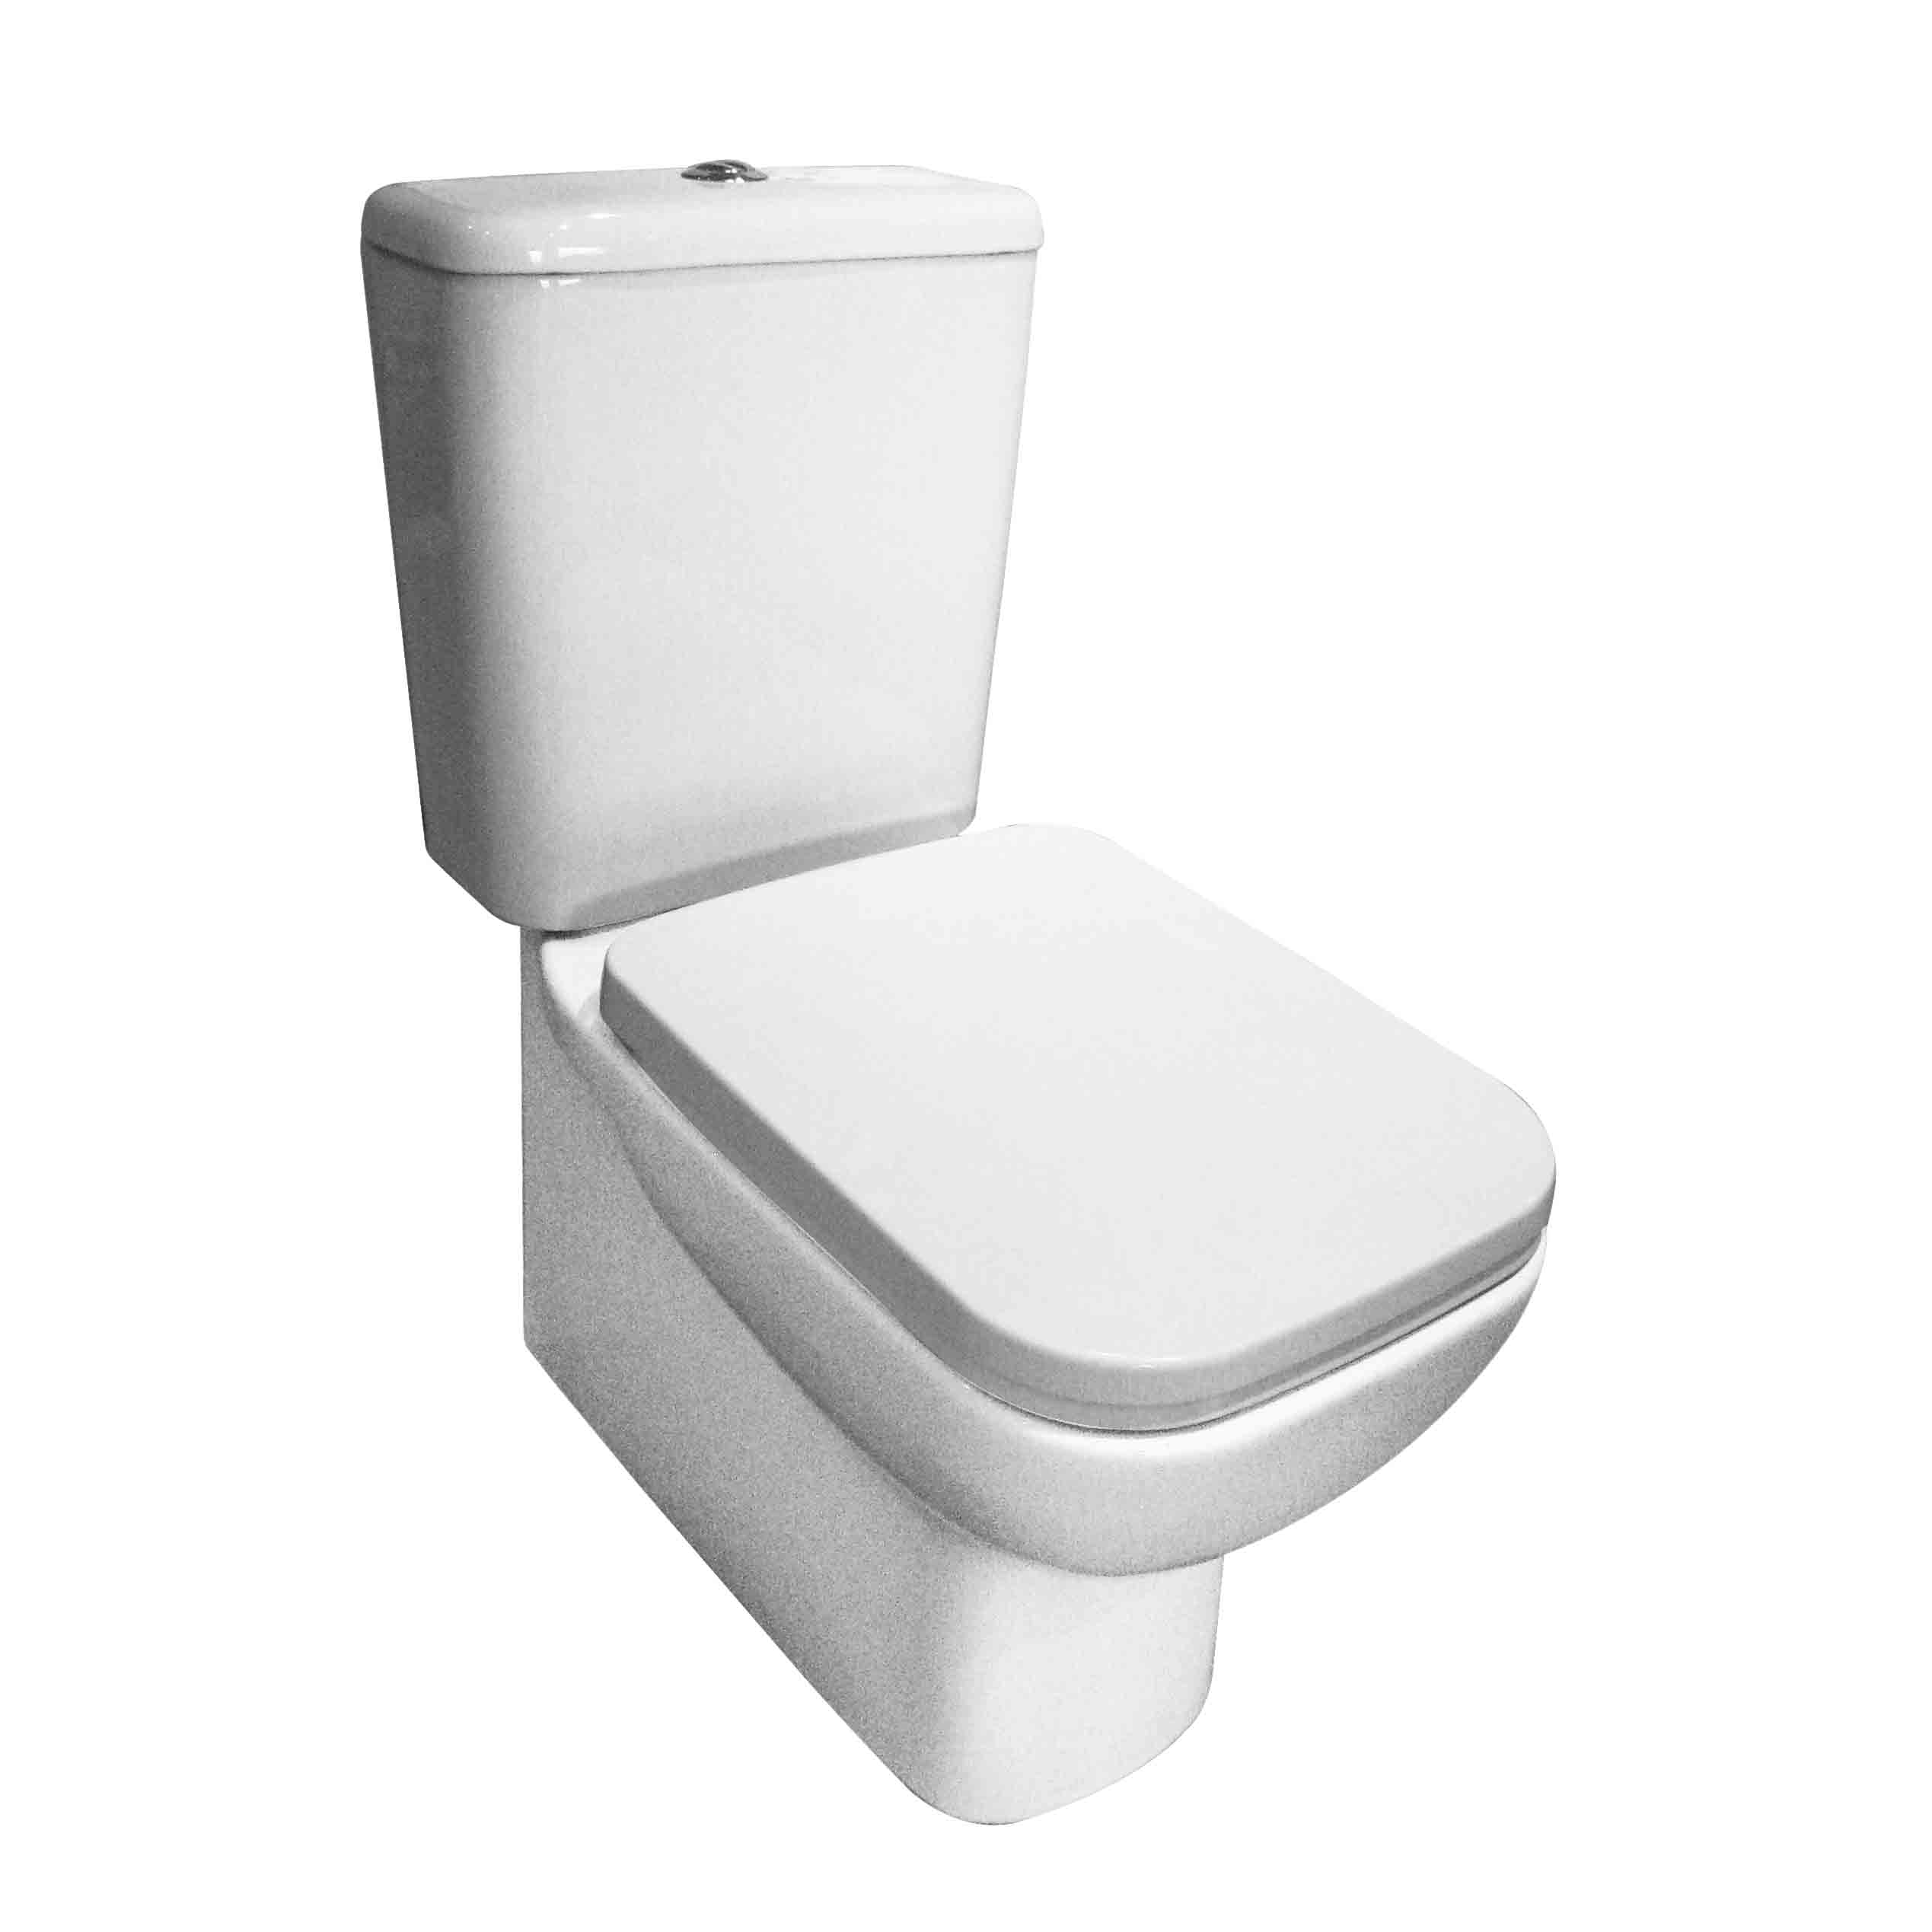 Orion Close Couple Toilet Trendyhomes